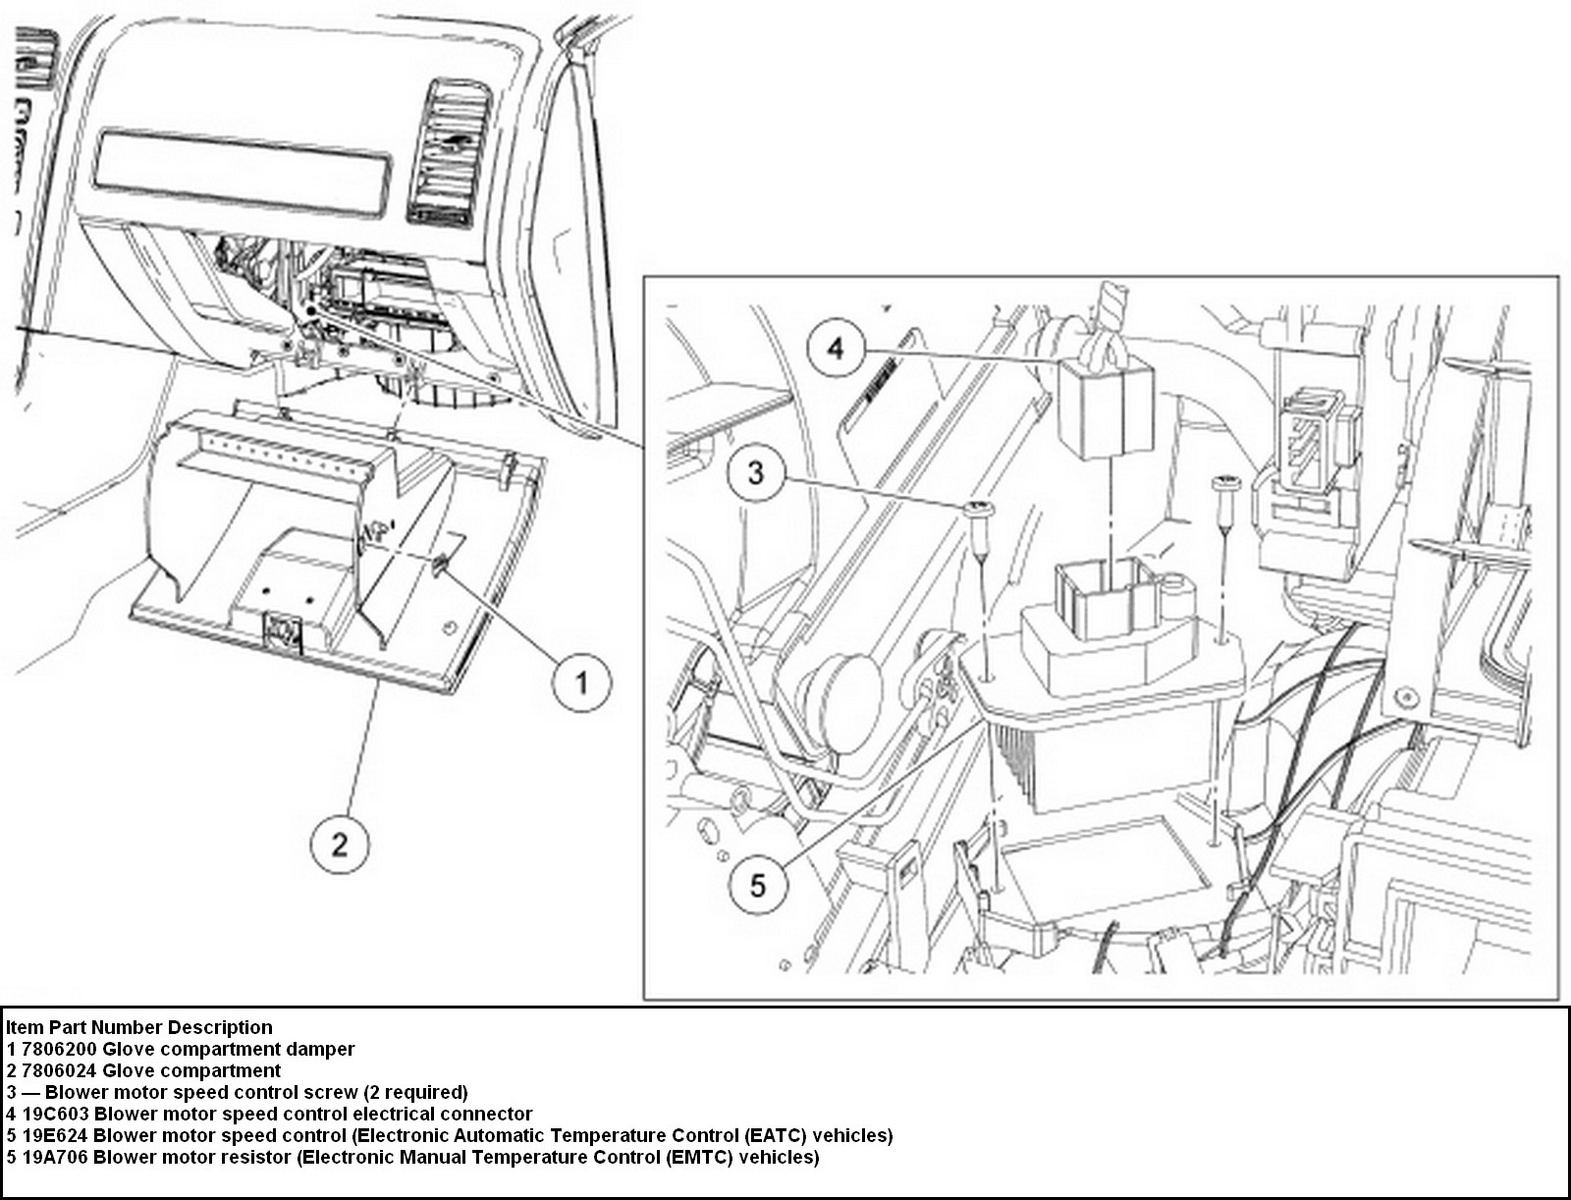 Discussion T24957_ds624347 on 2001 Ford Taurus Radio Wiring Diagram